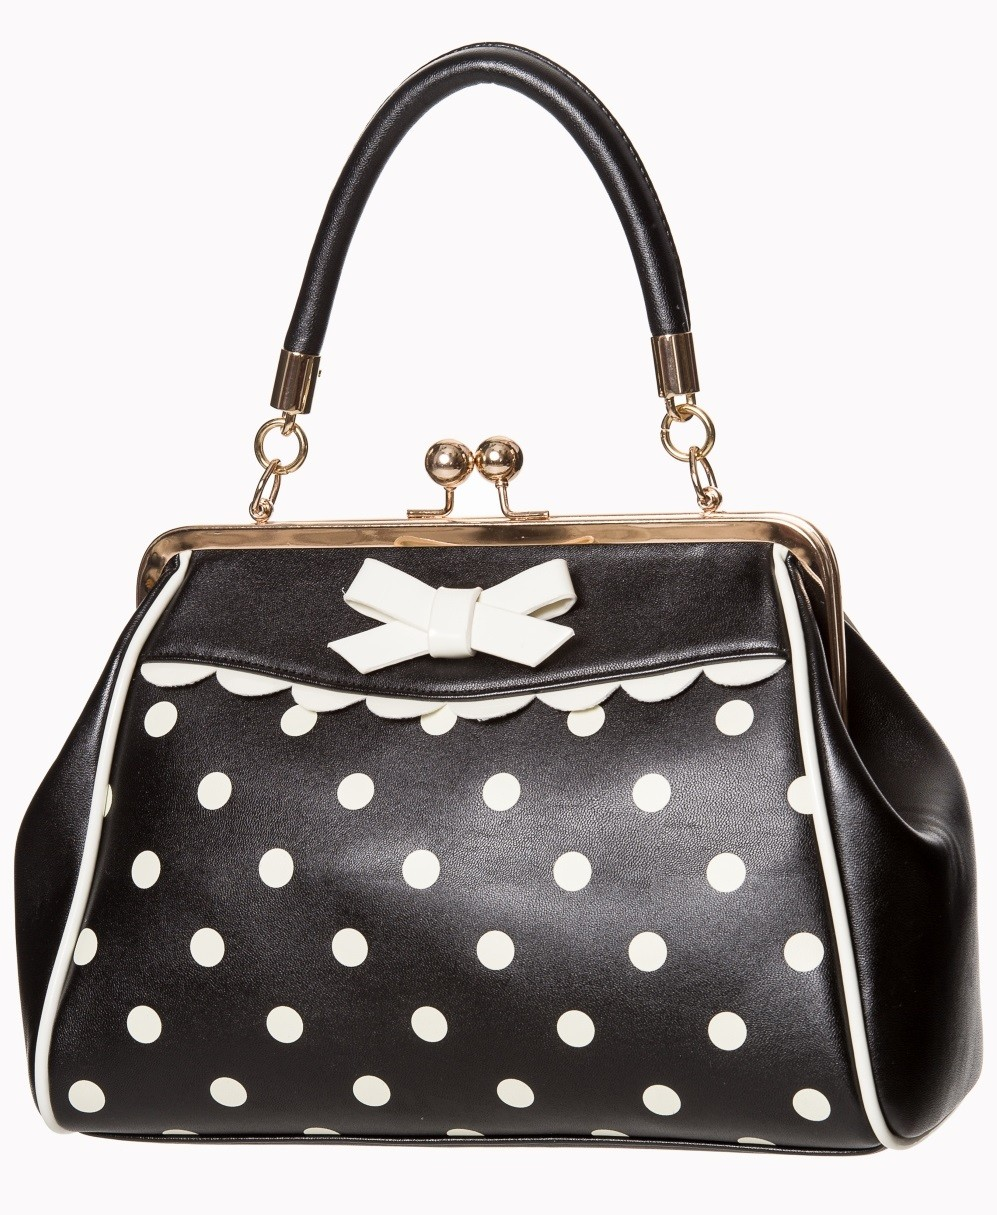 Banned Apparel Crazy Little Thing Bag - Cream